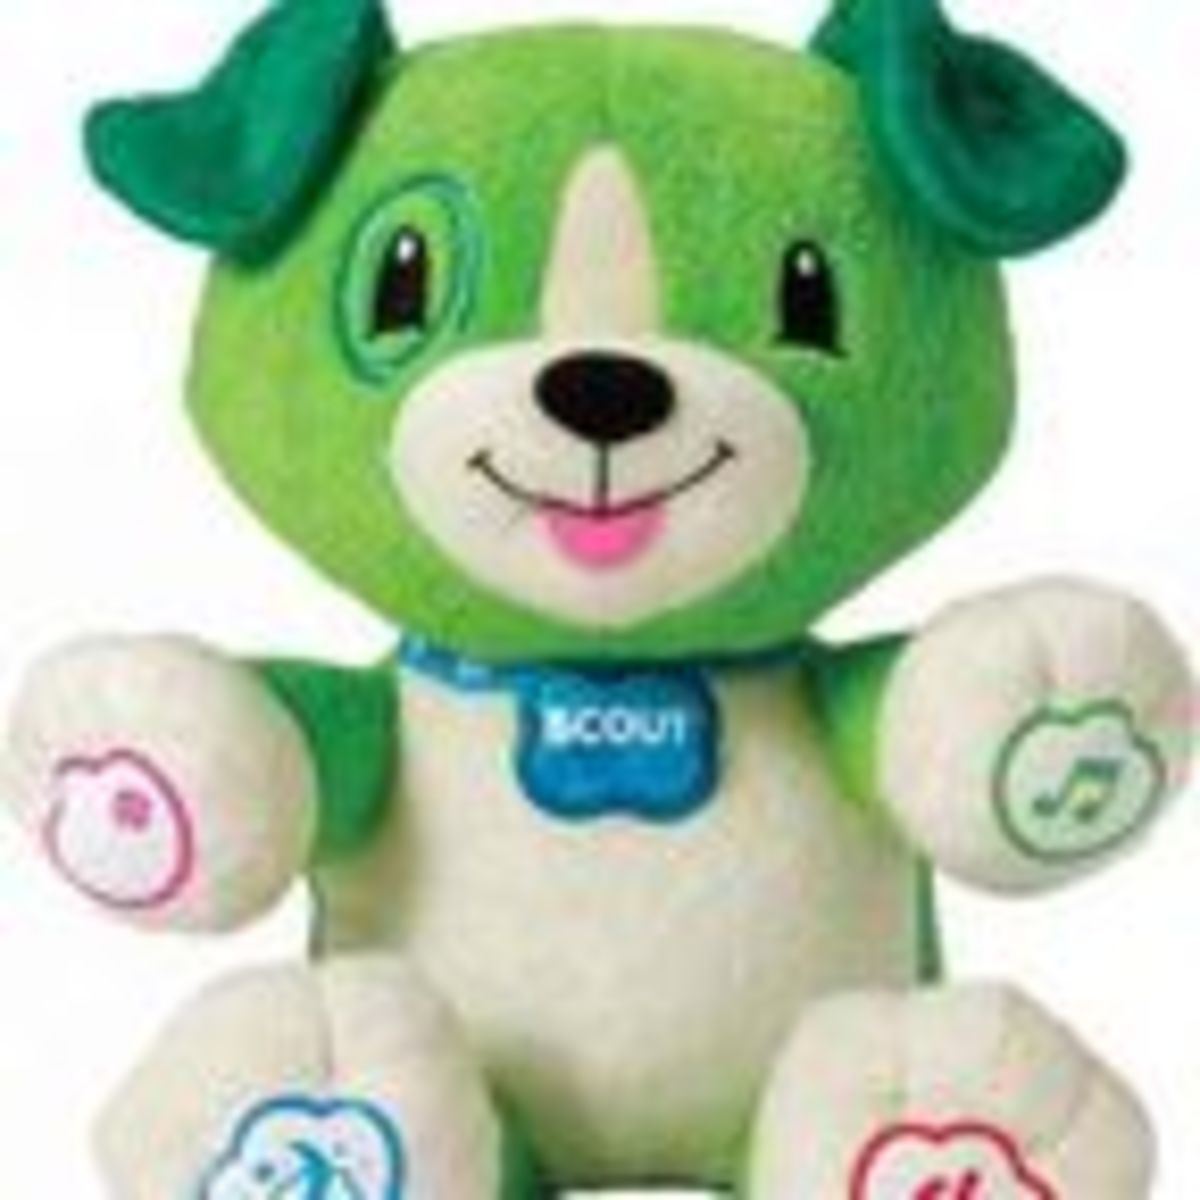 Cuddly Puppy Toy Teaches Kids to Swear | Psychology Today